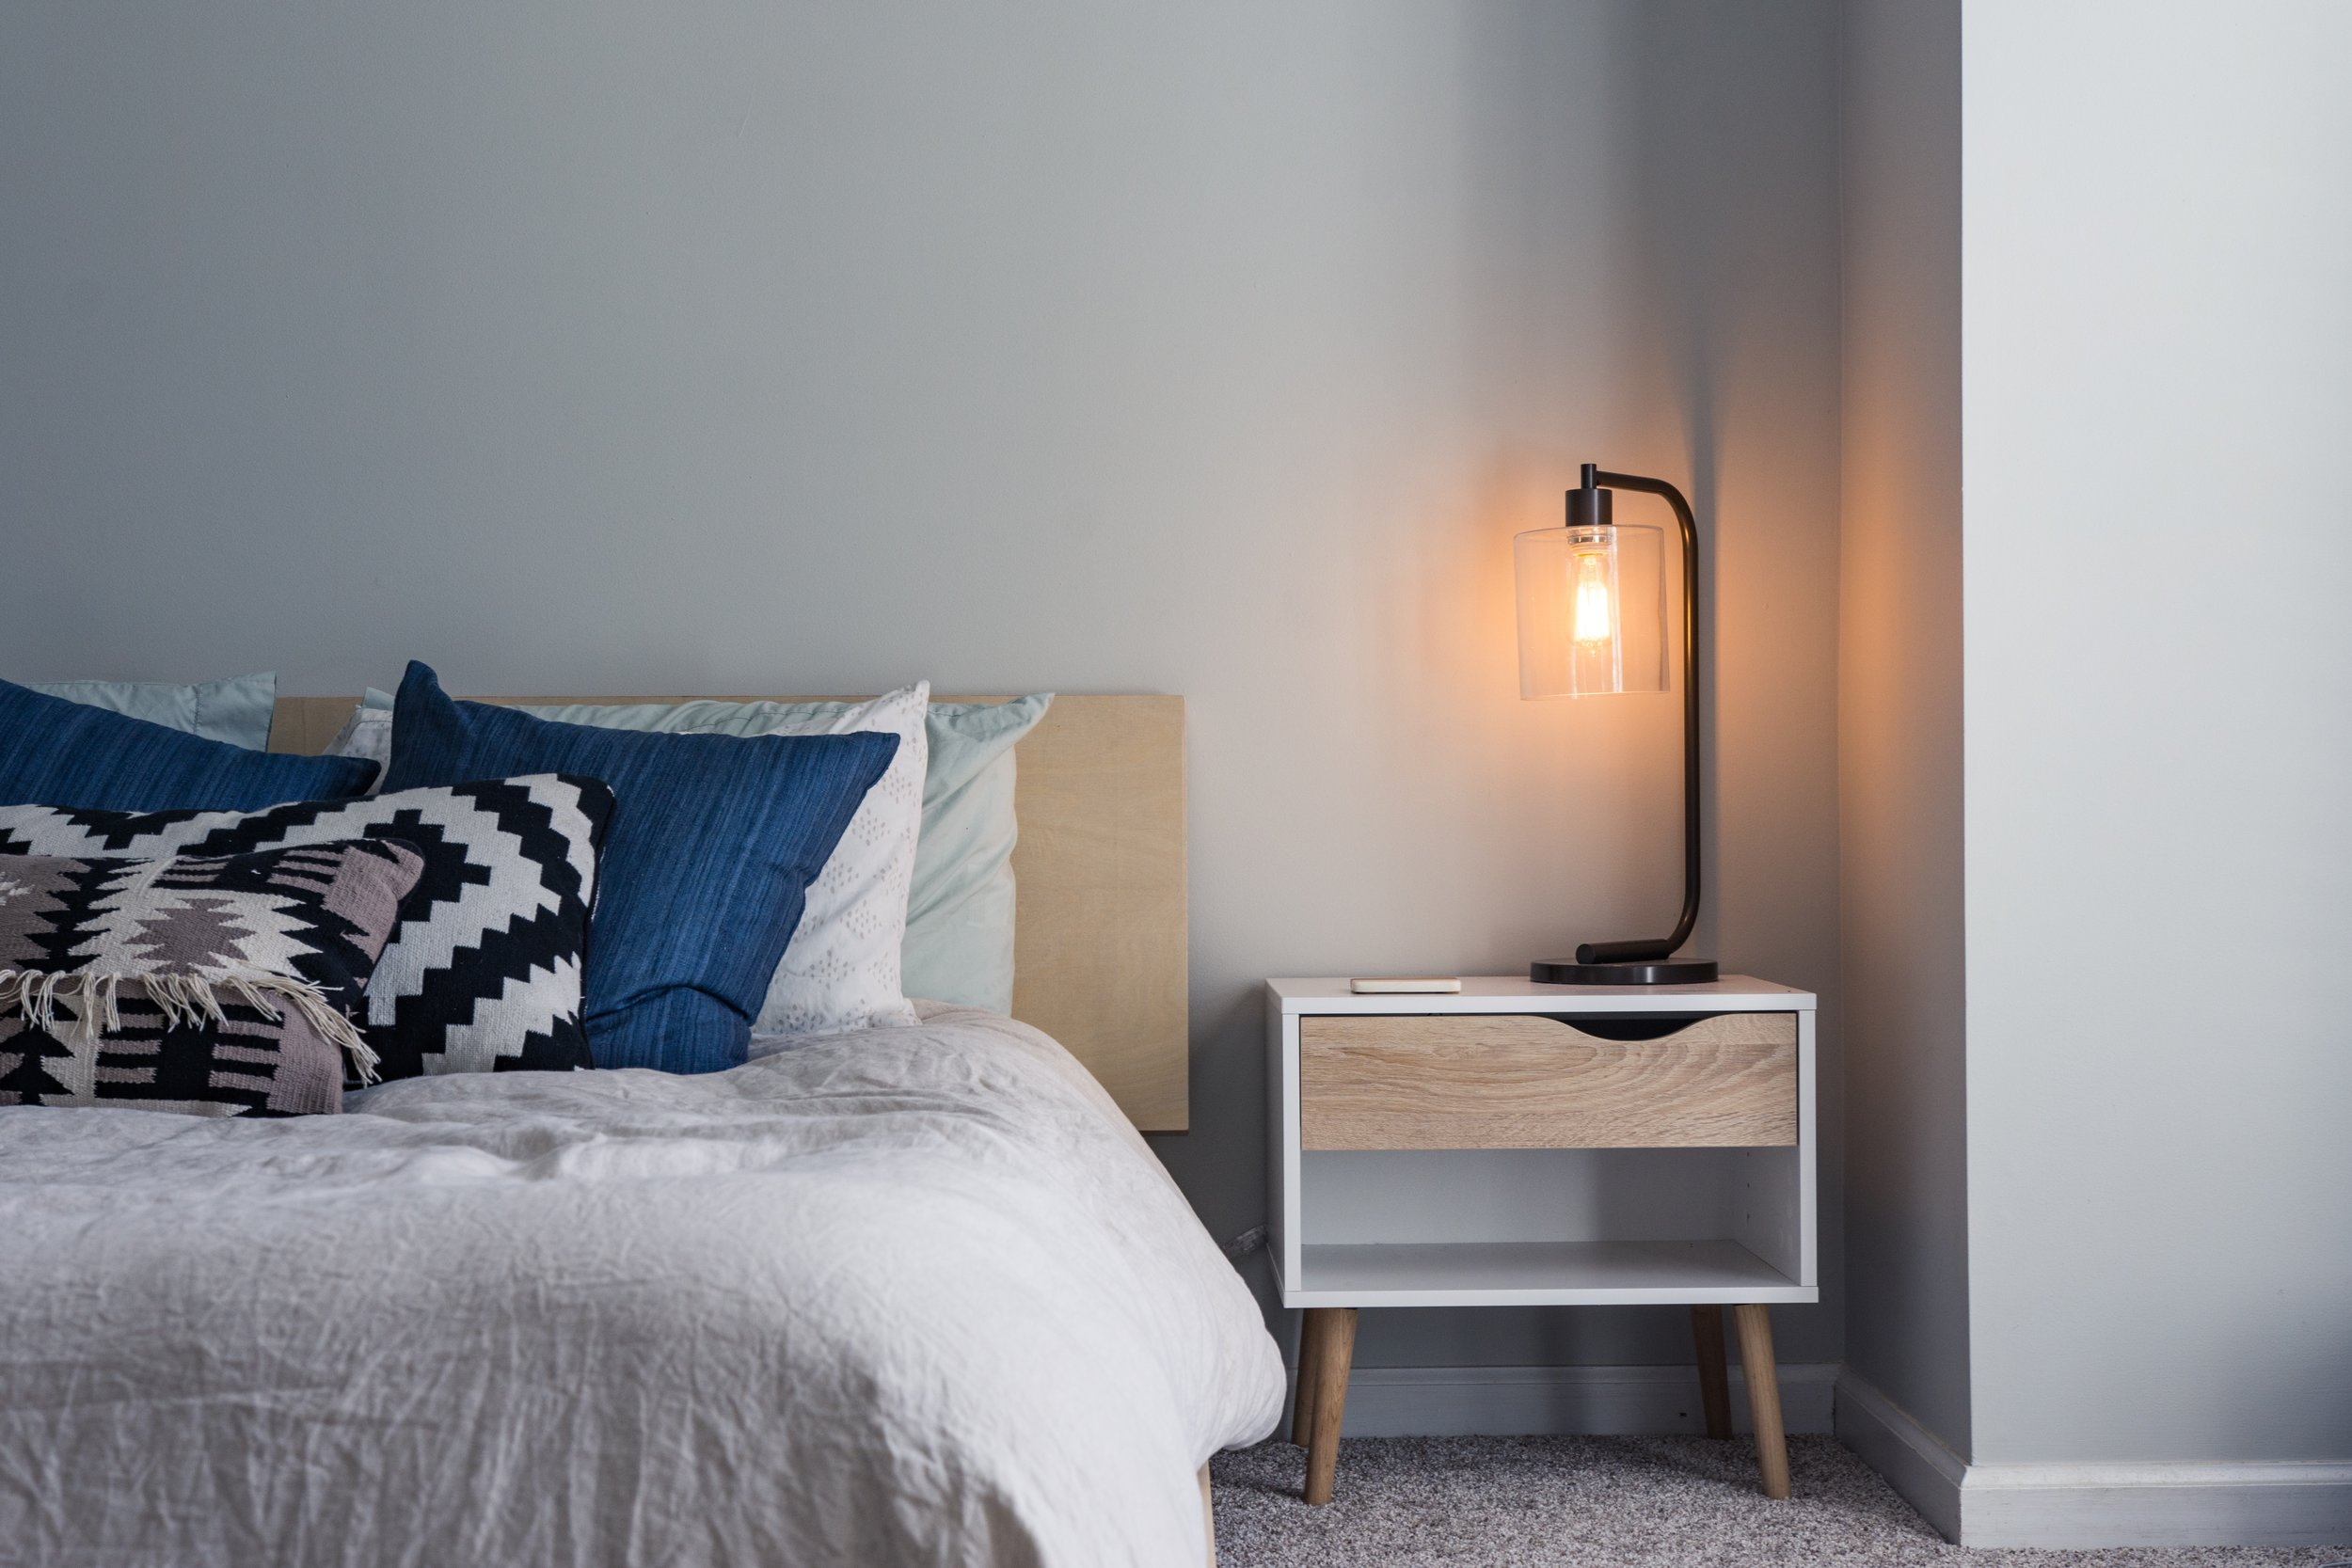 Black lamp on wooden bedside table next to bed